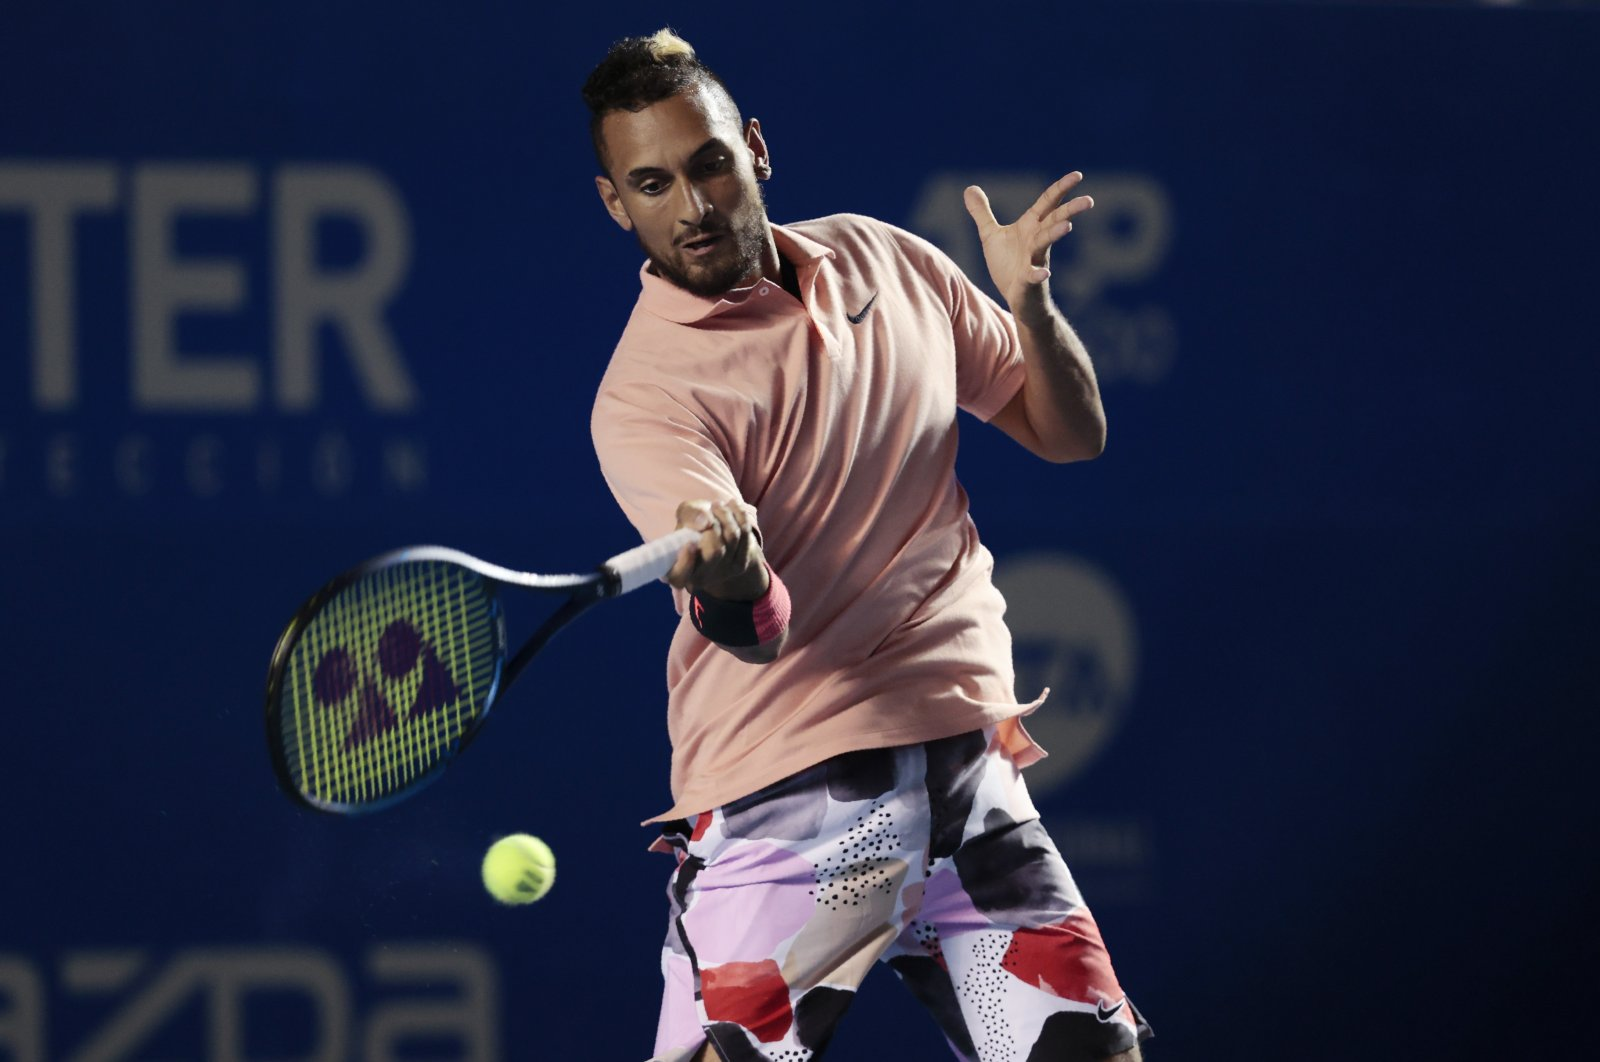 Australia's Nick Kyrgios during the Mexican Open tennis tournament in Acapulco, Mexico, Feb. 25, 2020. (AP Photo)